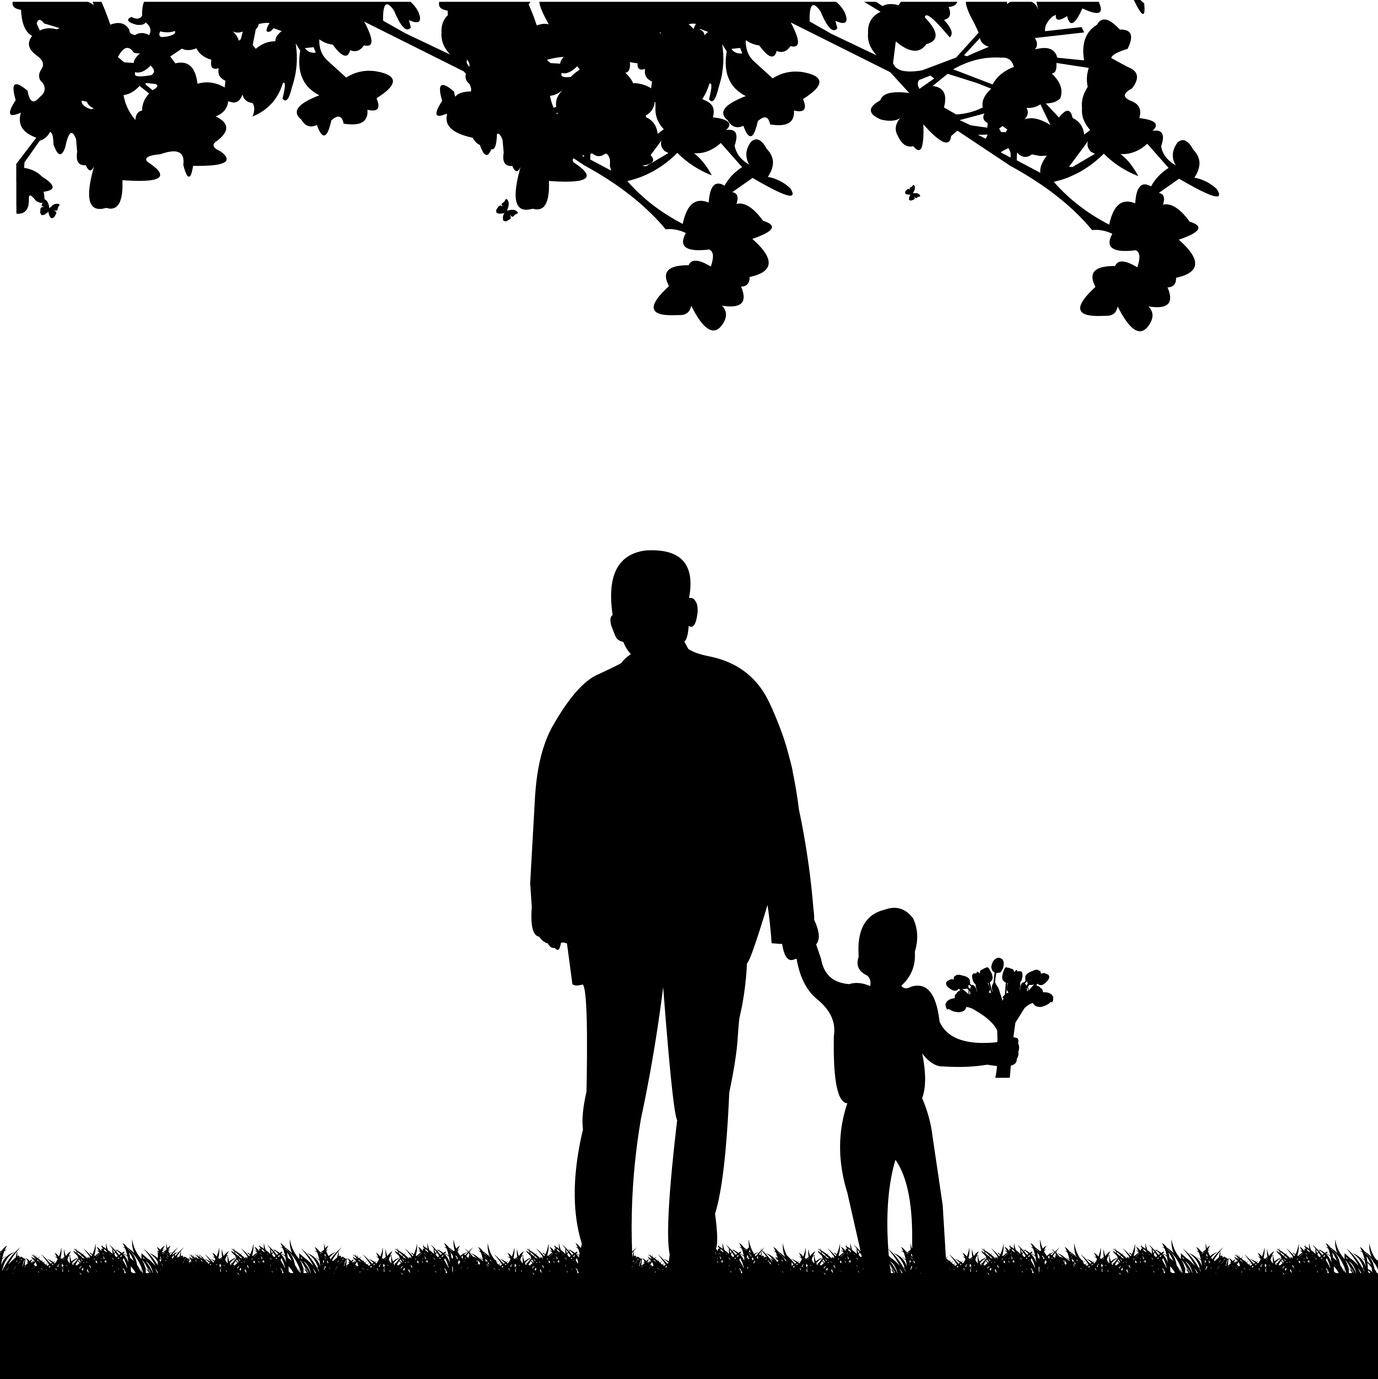 Grandpa Walks With A Grandson With Flowers In The Park One In The